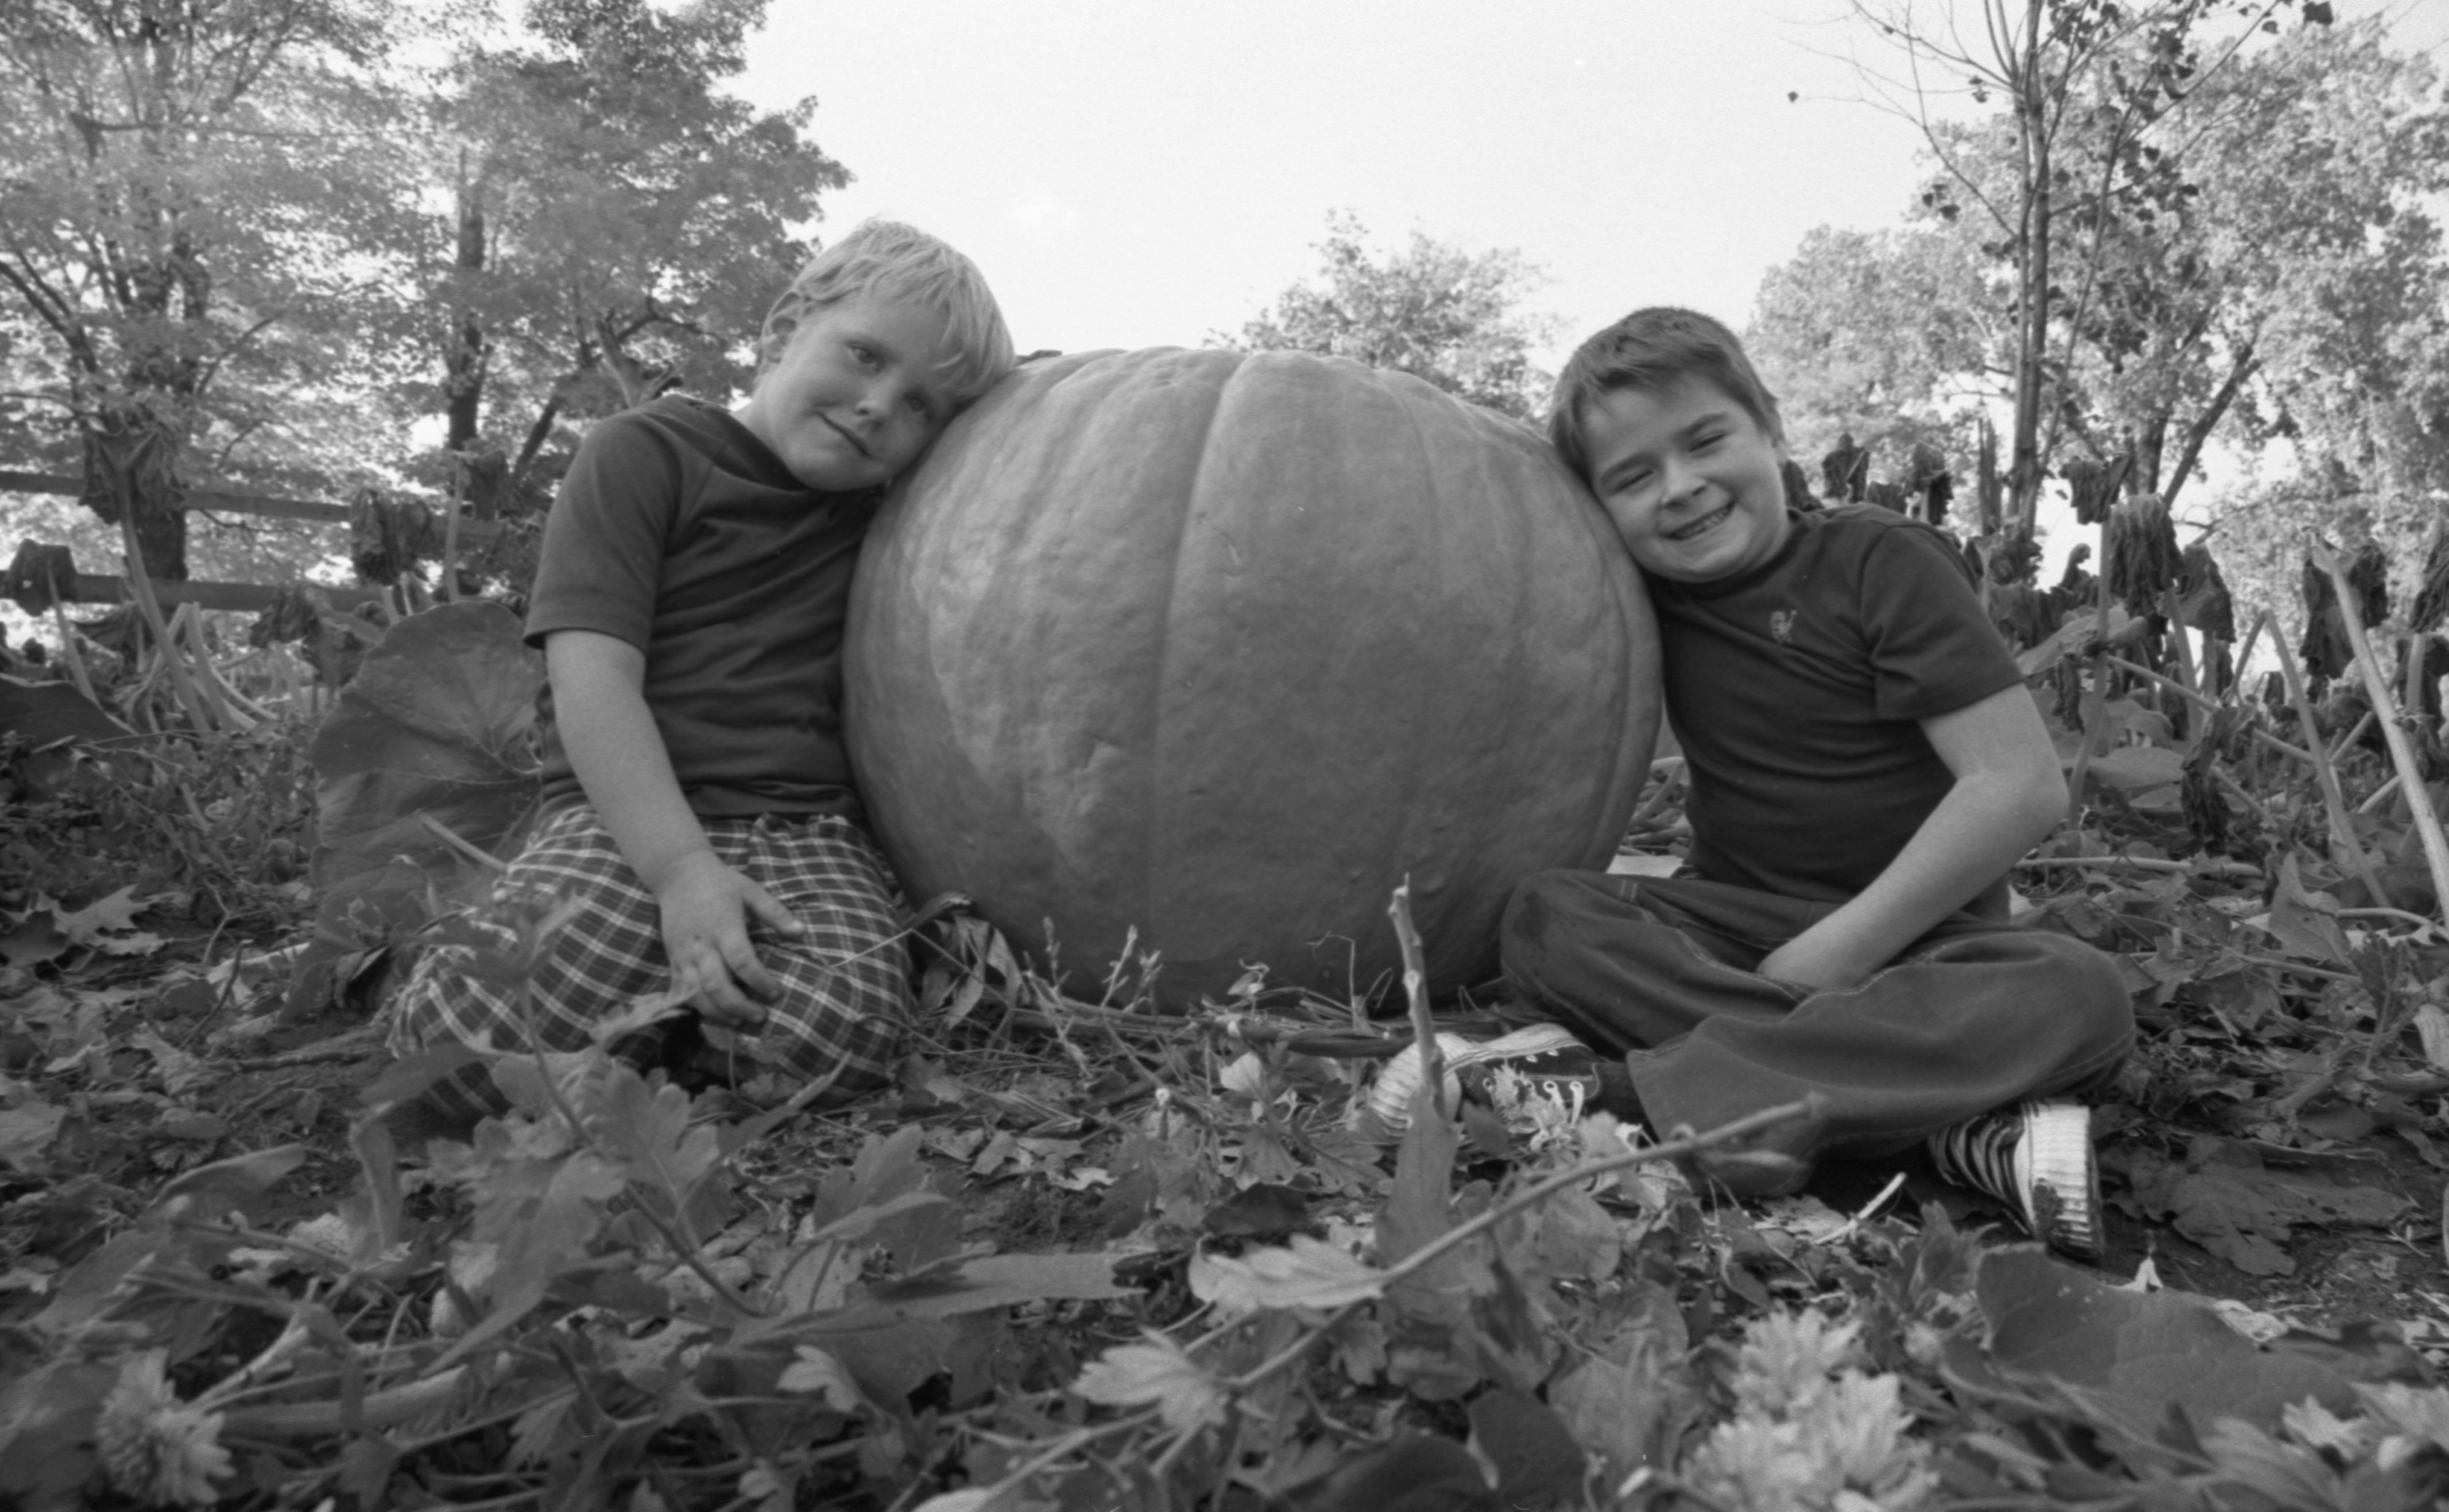 Andy Potter & Tim Michalak With A Giant Pumpkin, October 1975 image